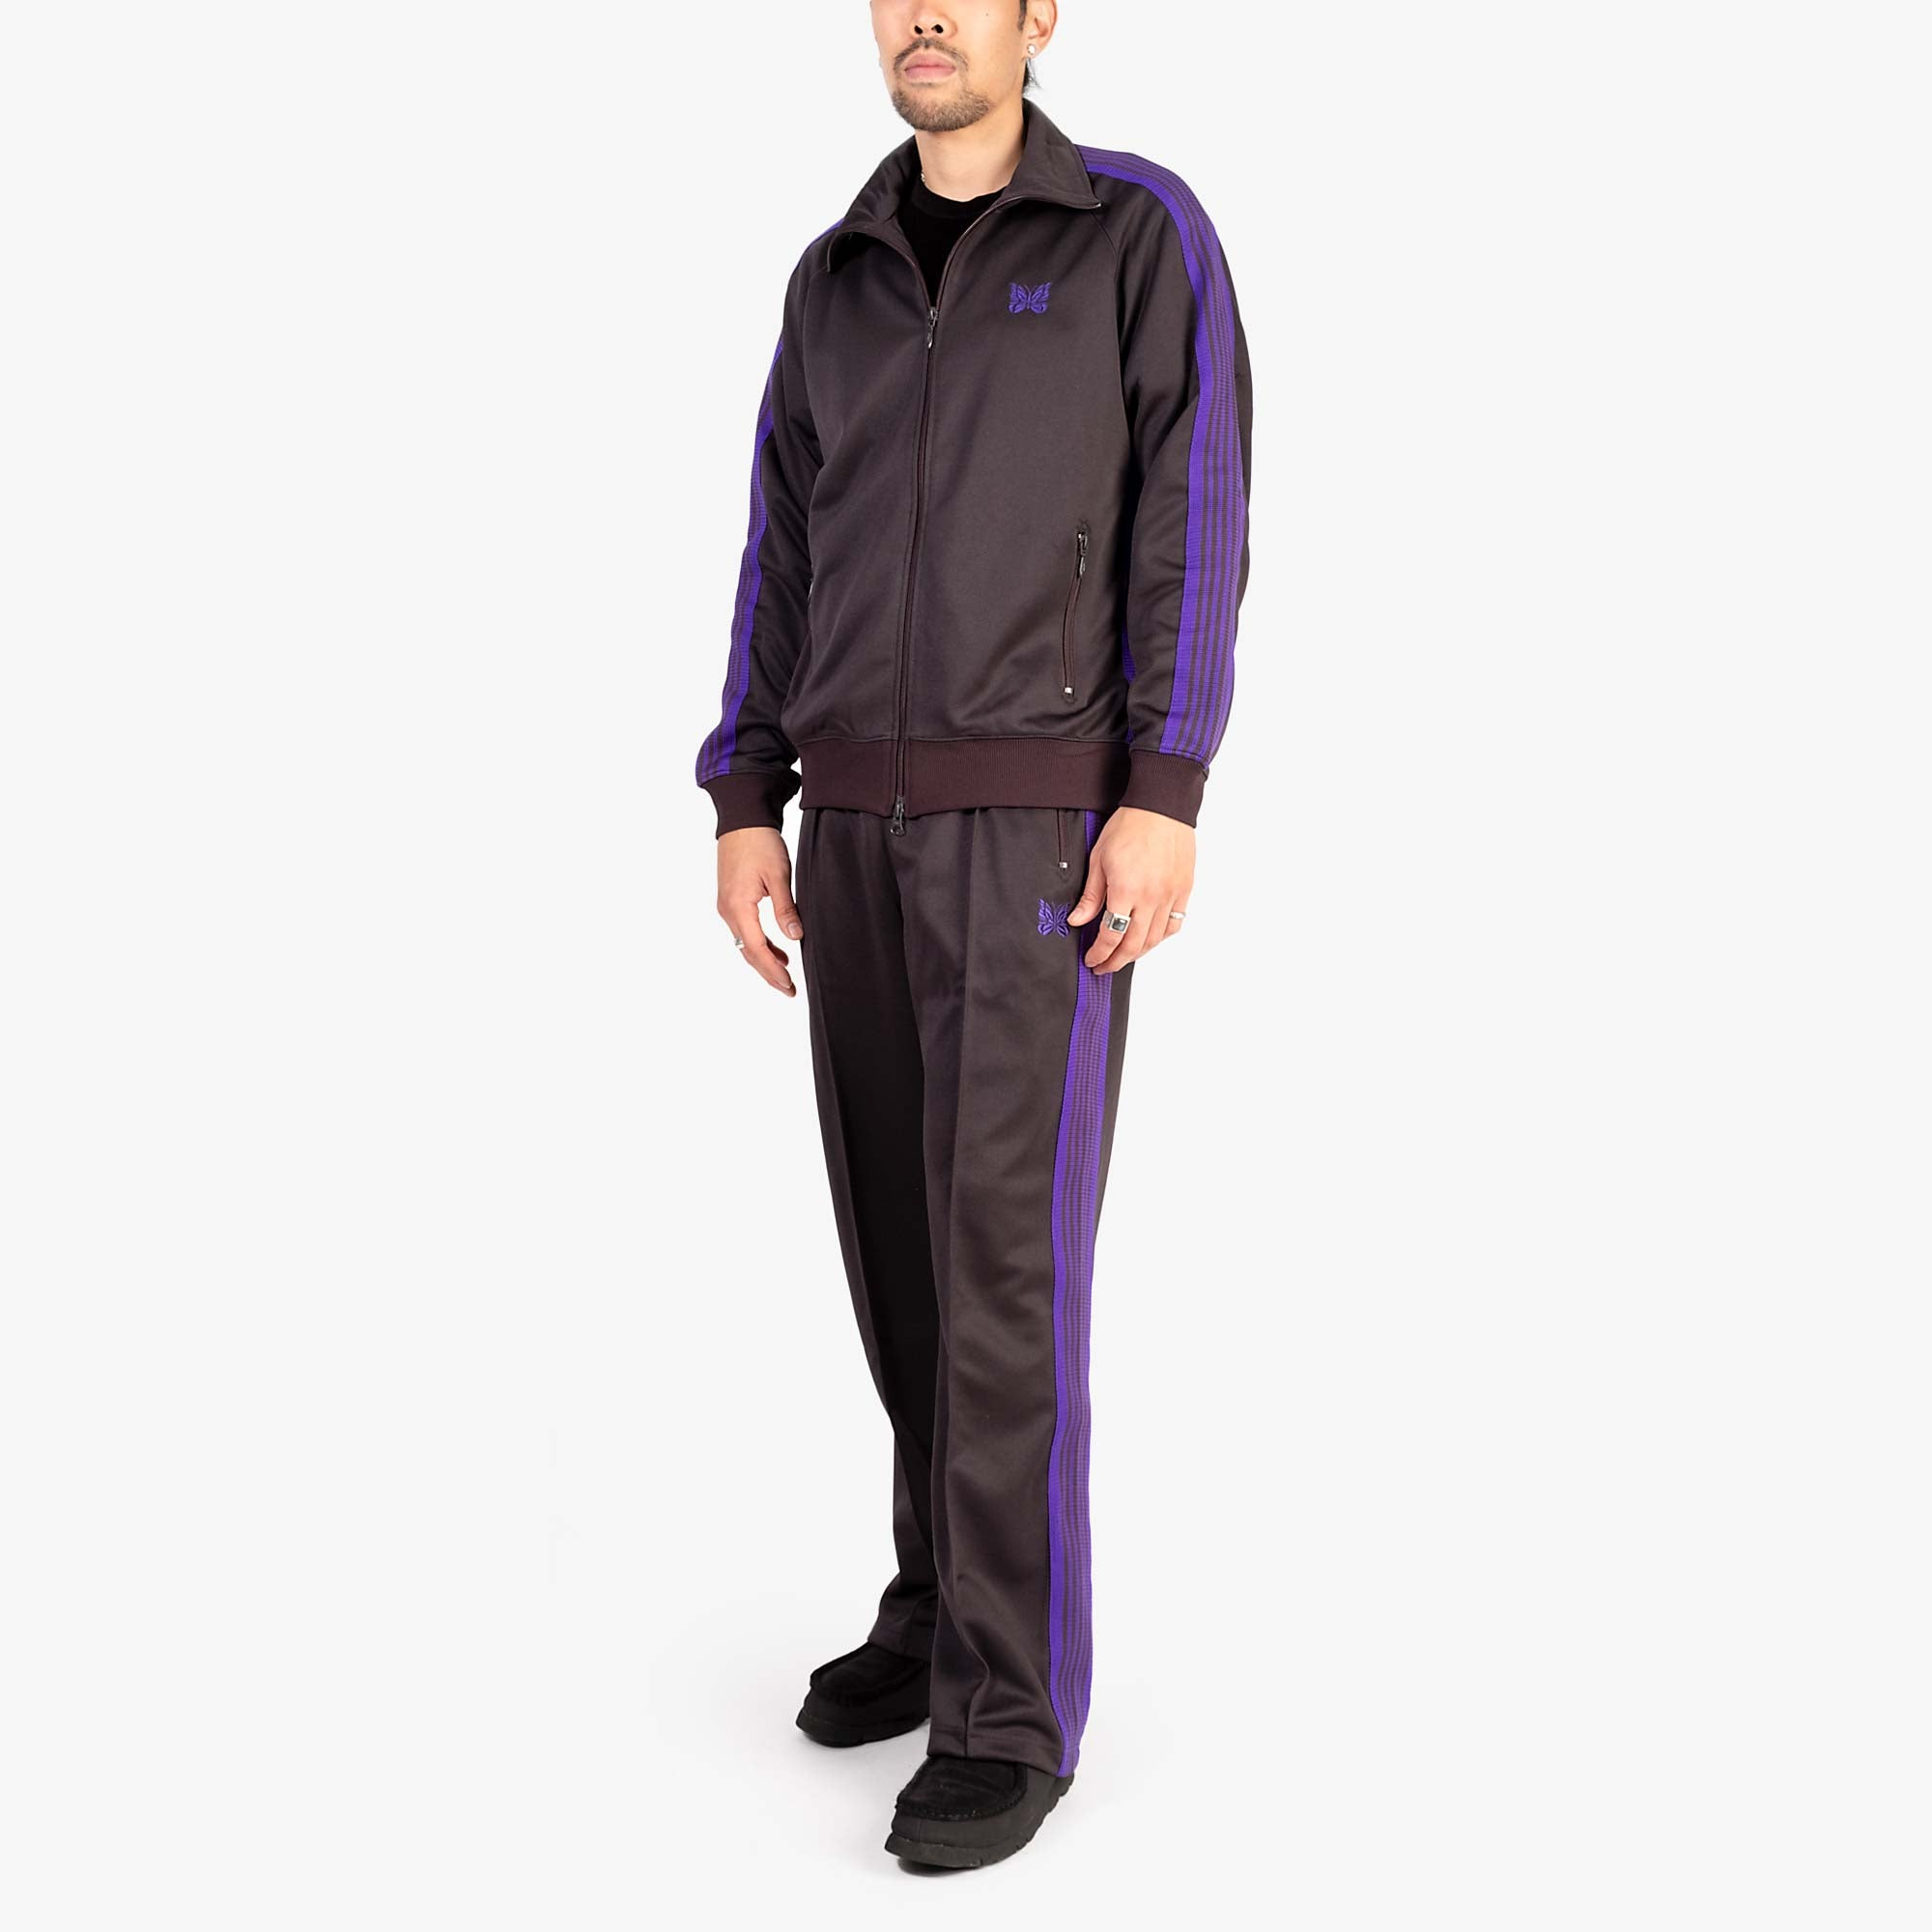 Needles M' Track Jacket Poly Smooth - Charcoal 11